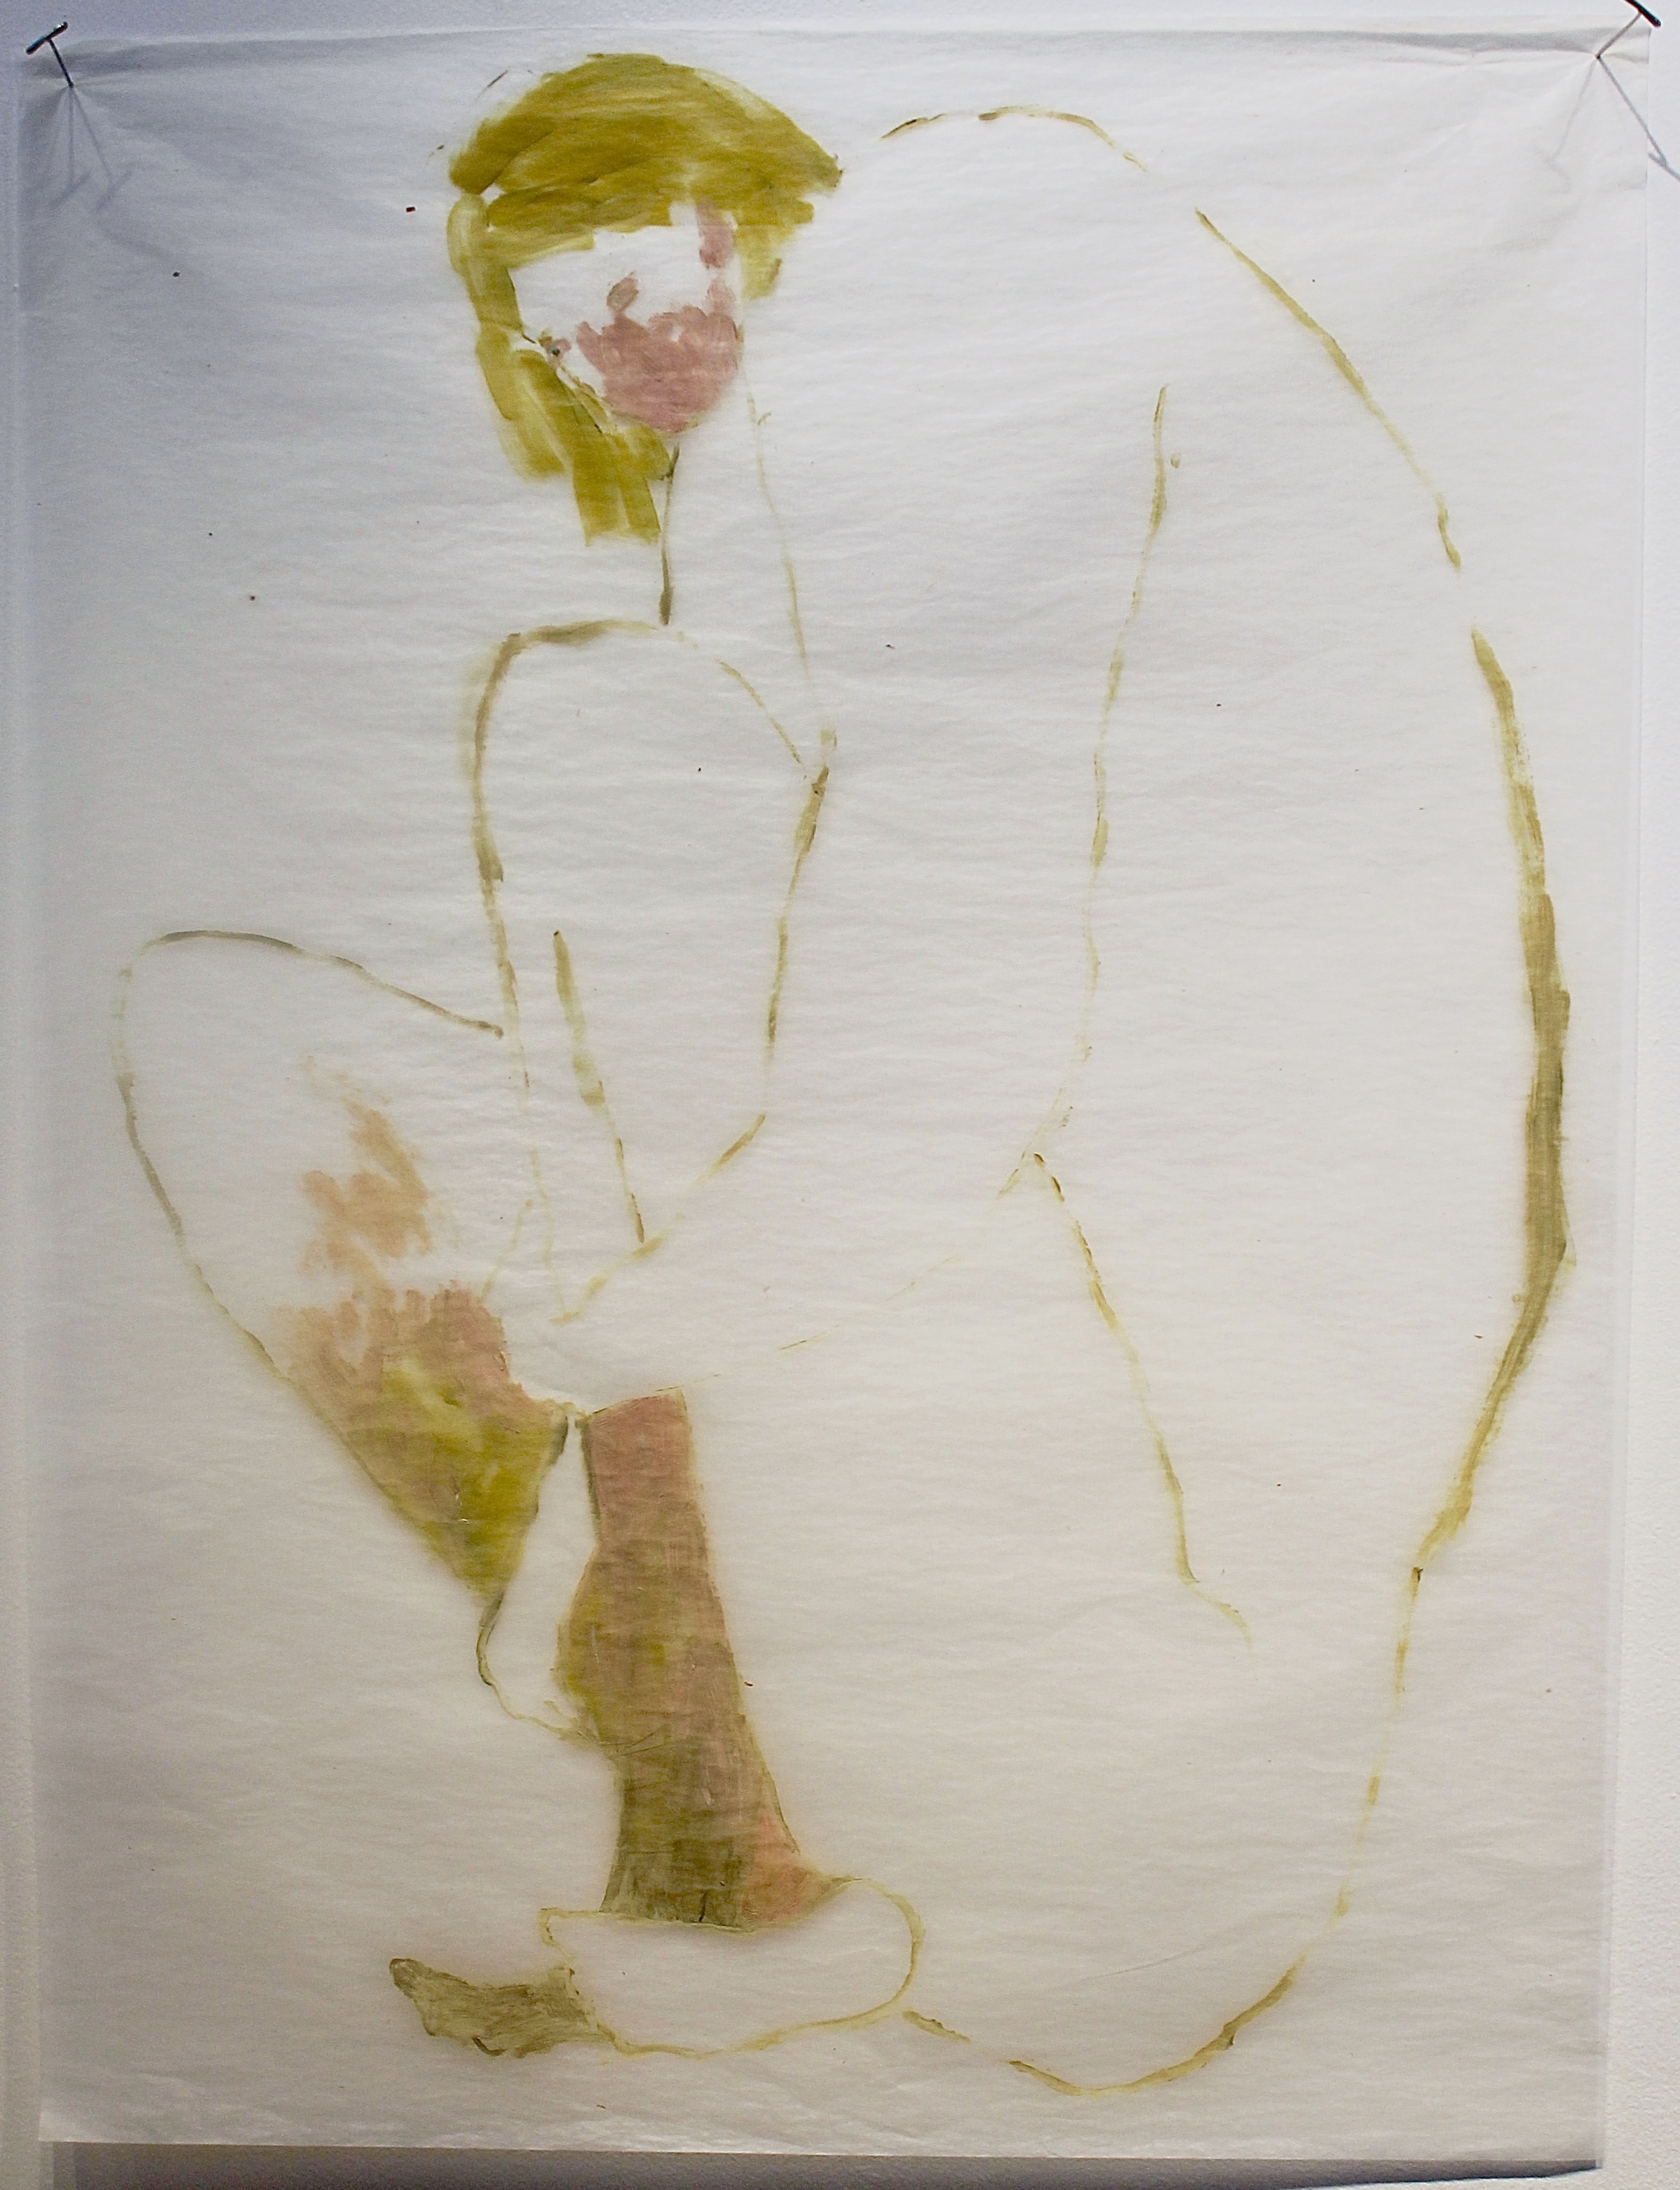 Slowly Disintegrating , 2014 Oil on gampi silk paper 61 x 51 cm